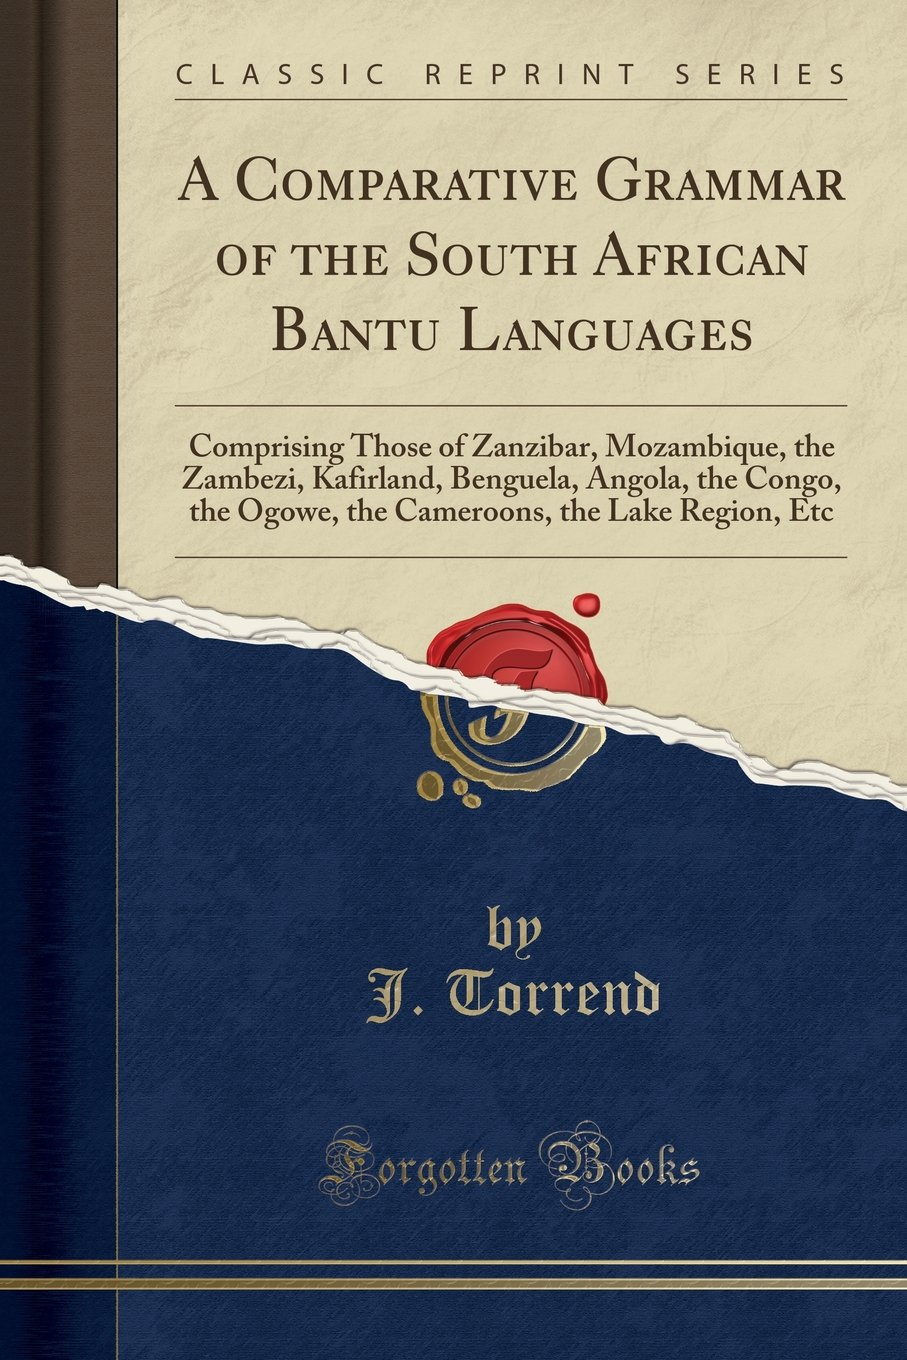 Read Online A Comparative Grammar of the South African Bantu Languages: Comprising Those of Zanzibar, Mozambique, the Zambezi, Kafirland, Benguela, Angola, the ... the Lake Region, Etc (Classic Reprint) ebook